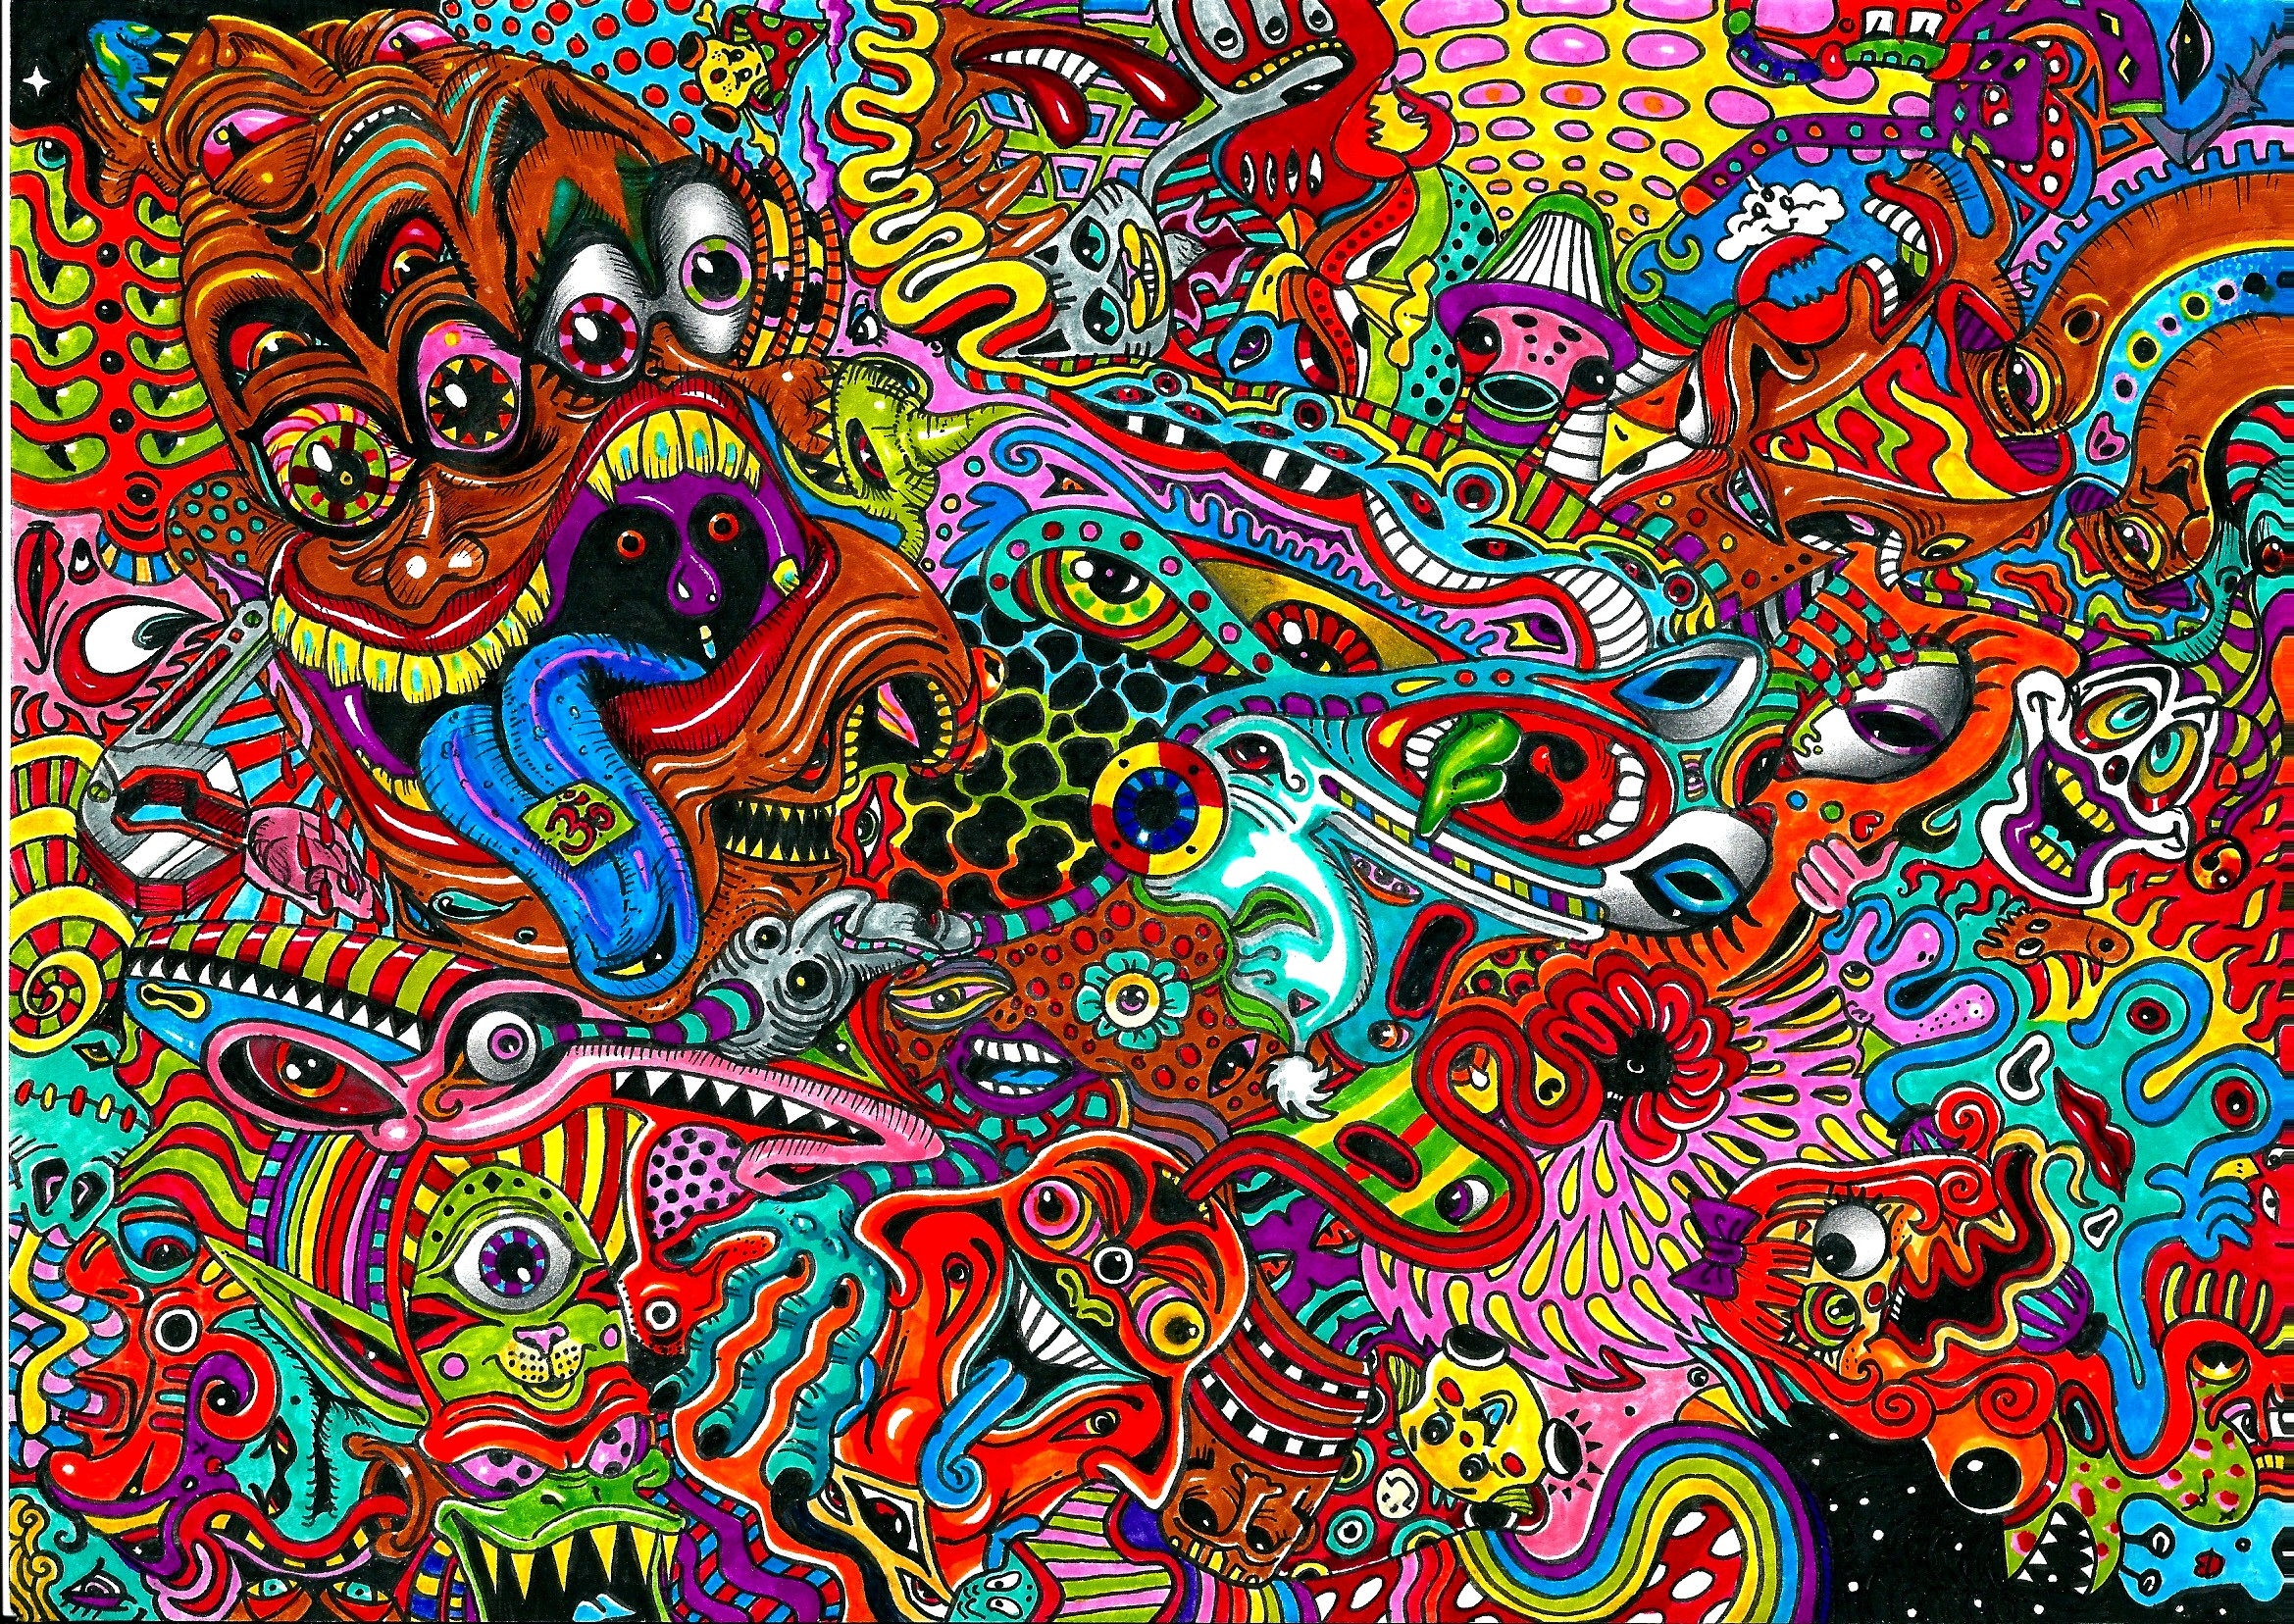 Psychedelic Computer Wallpapers Desktop Backgrounds 2339x1656